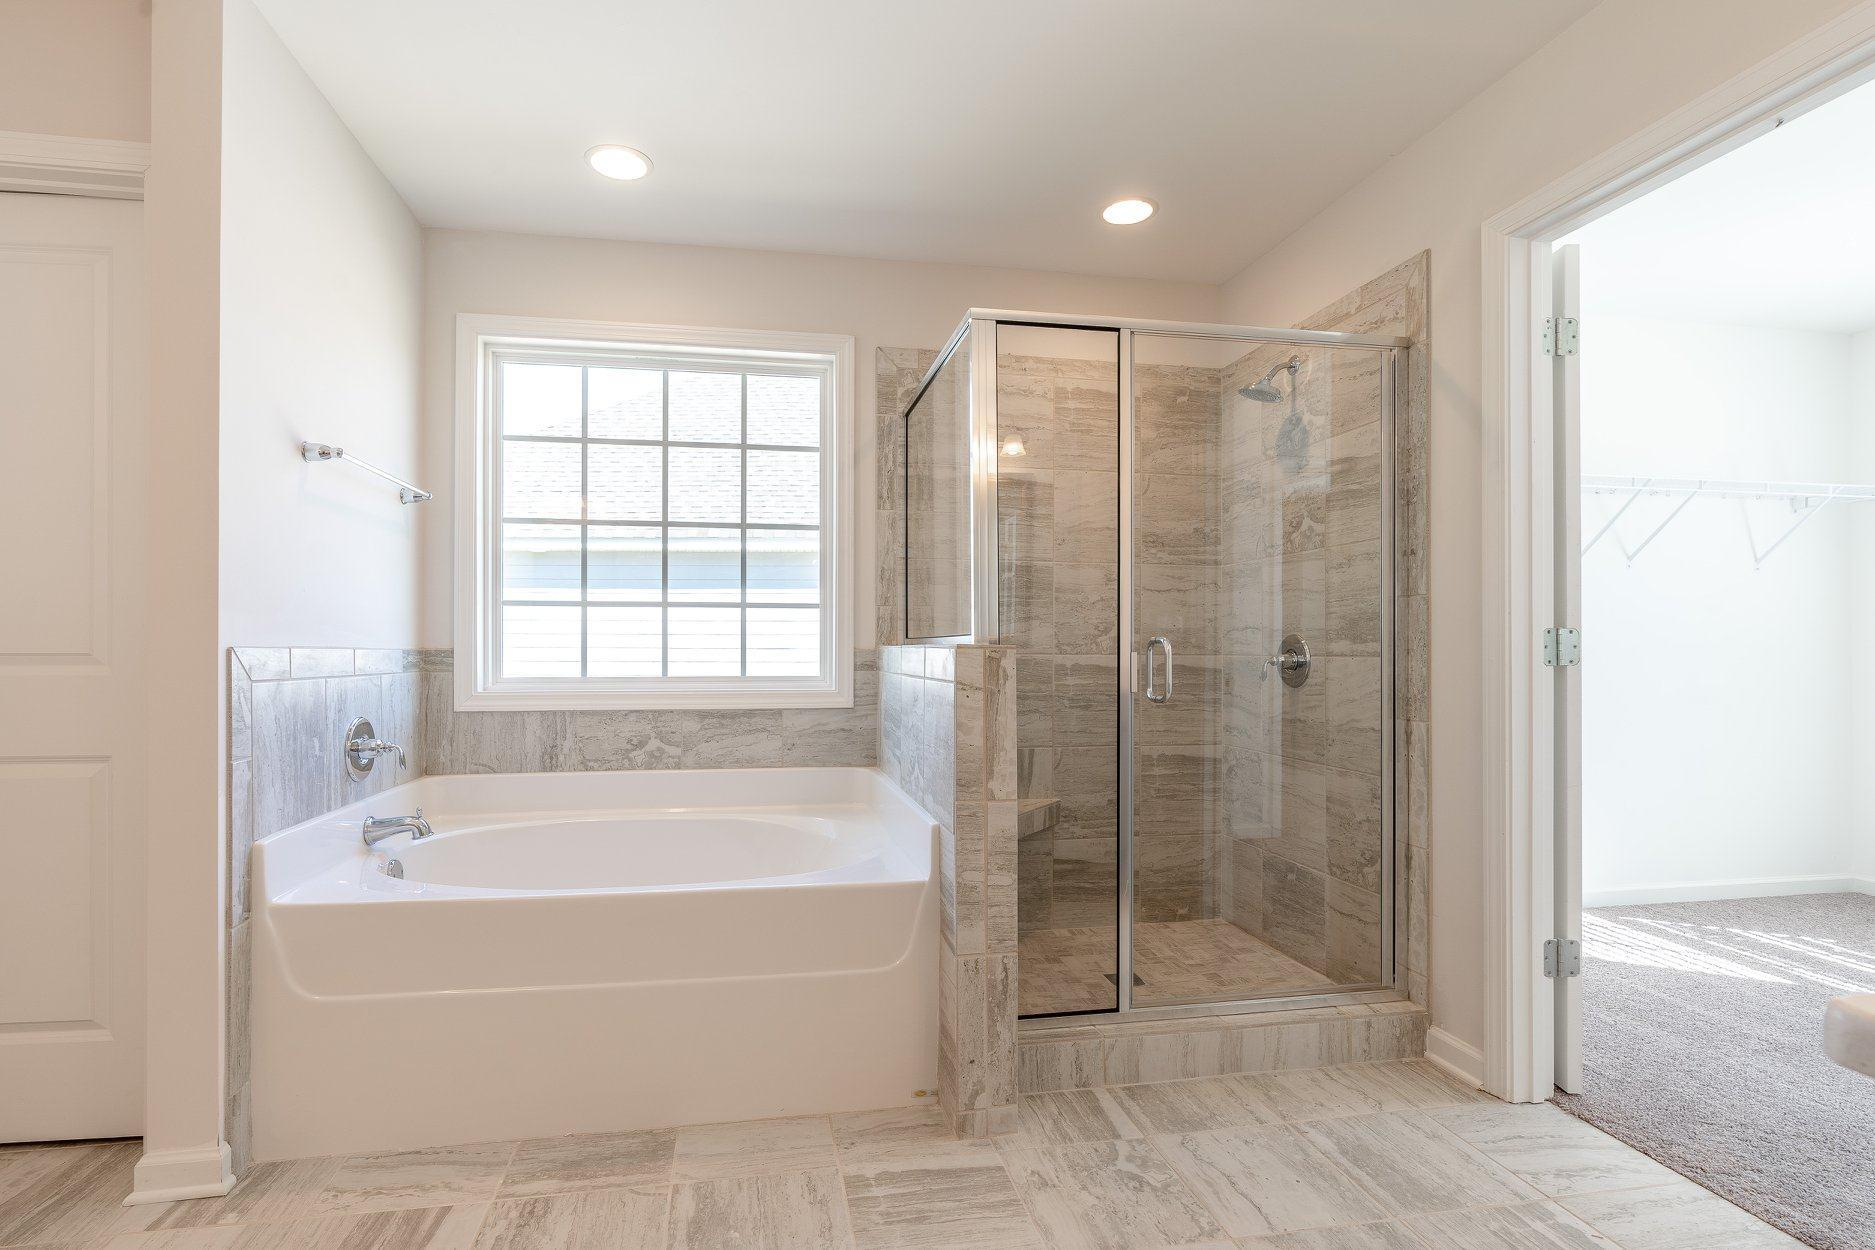 Bathroom featured in the Belmont By Hughston Homes in Augusta, GA